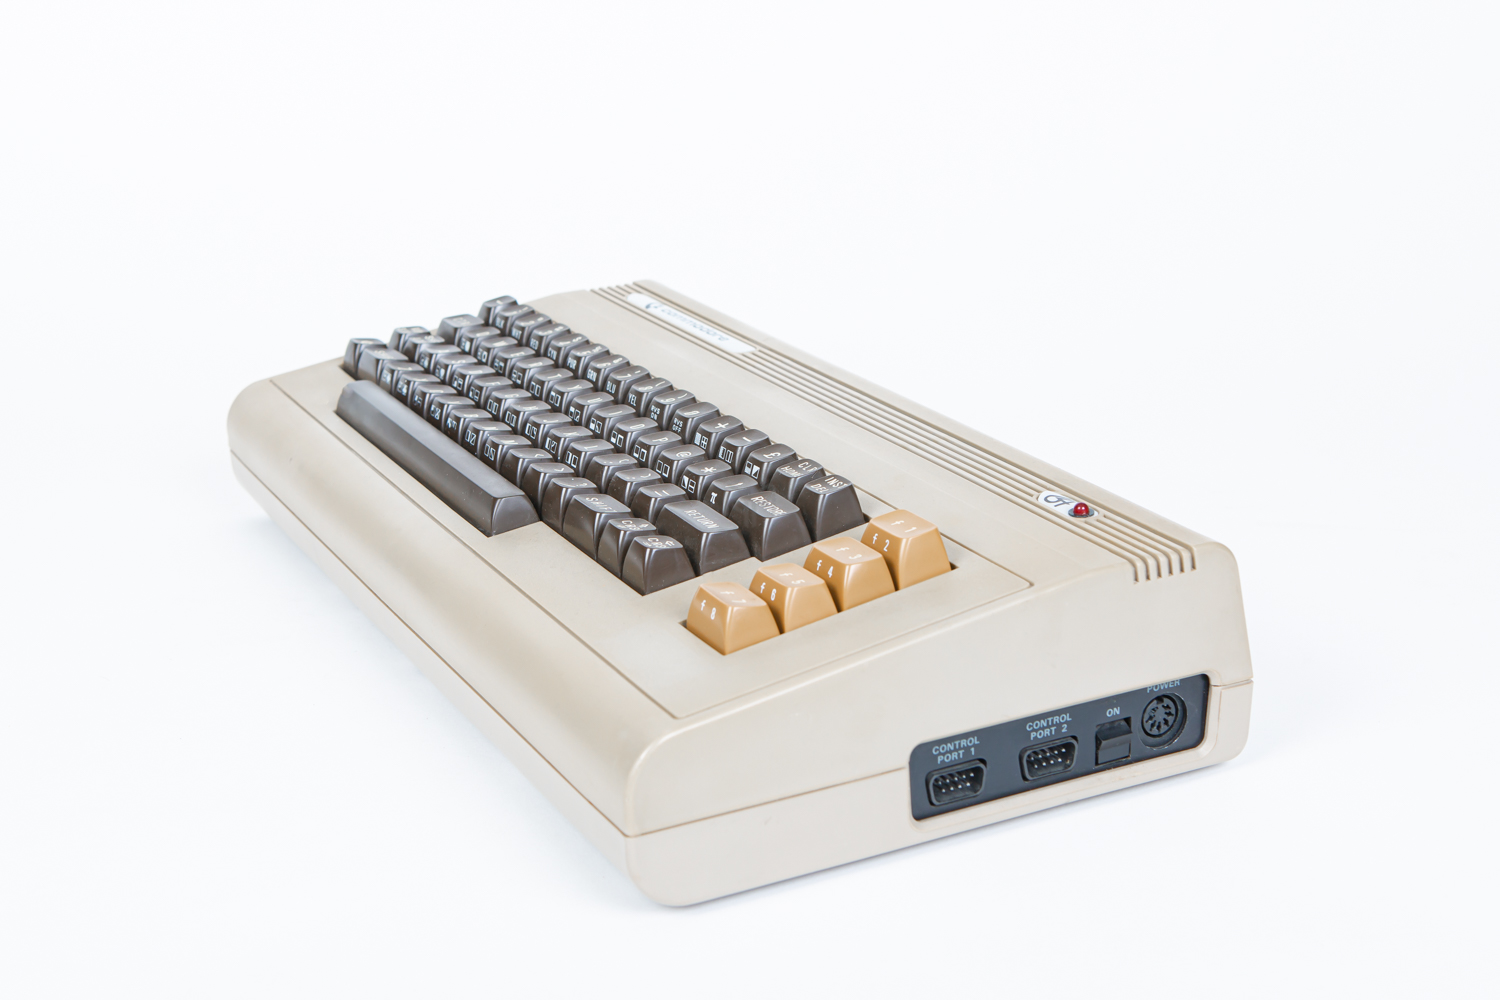 Commodore 64 breadbin